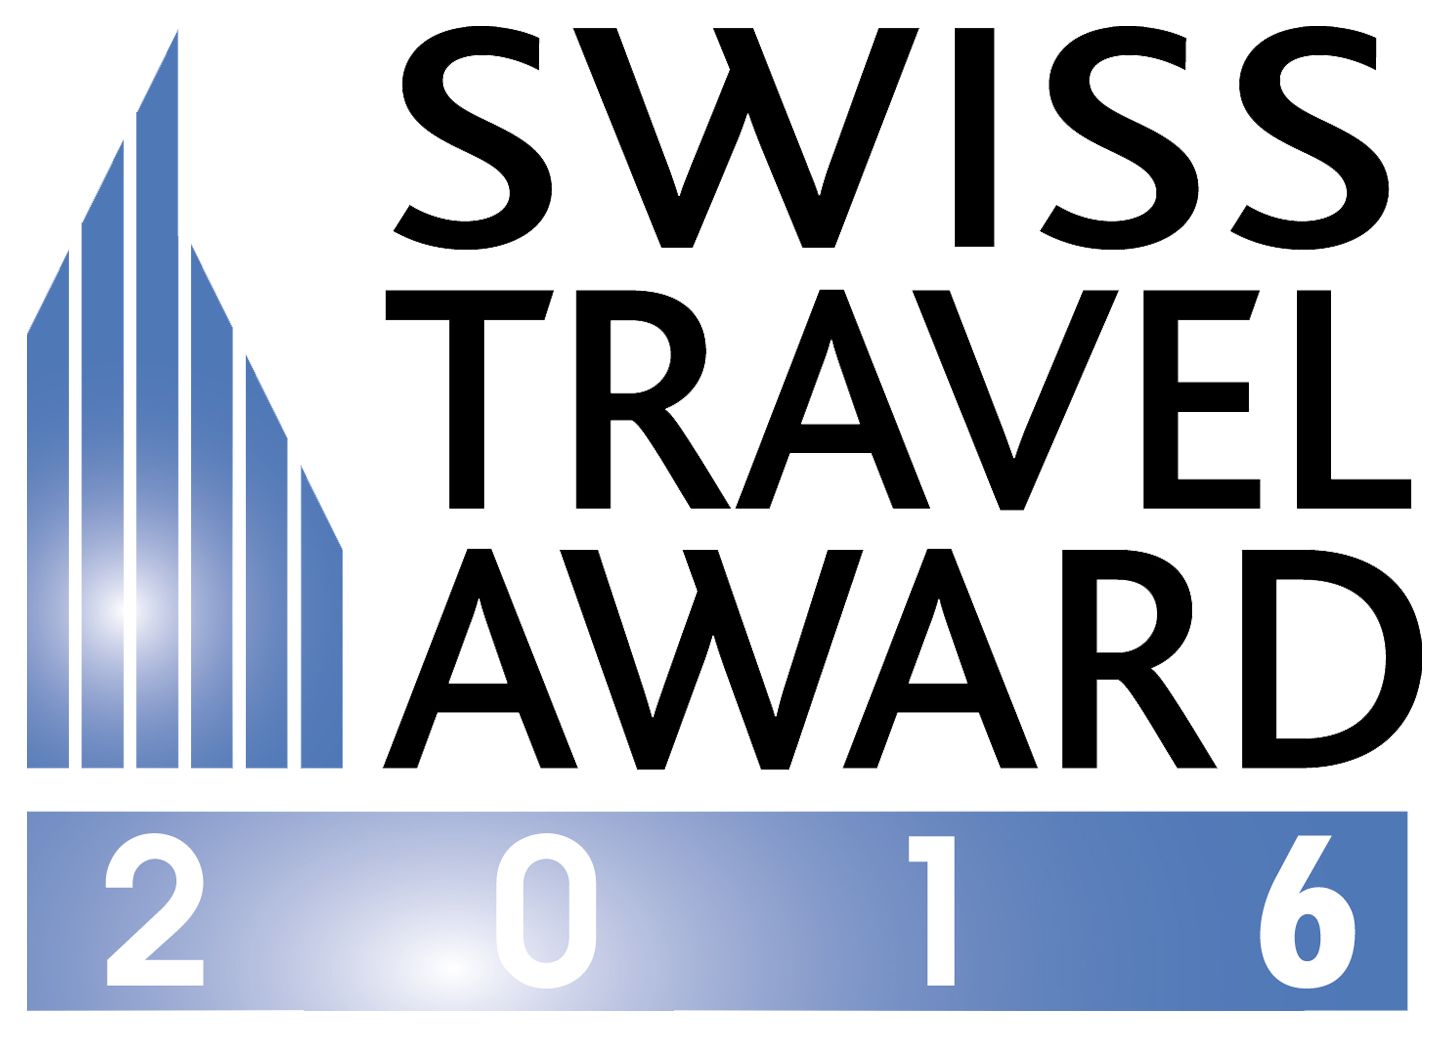 16sta_Swiss Travel Award_Logo